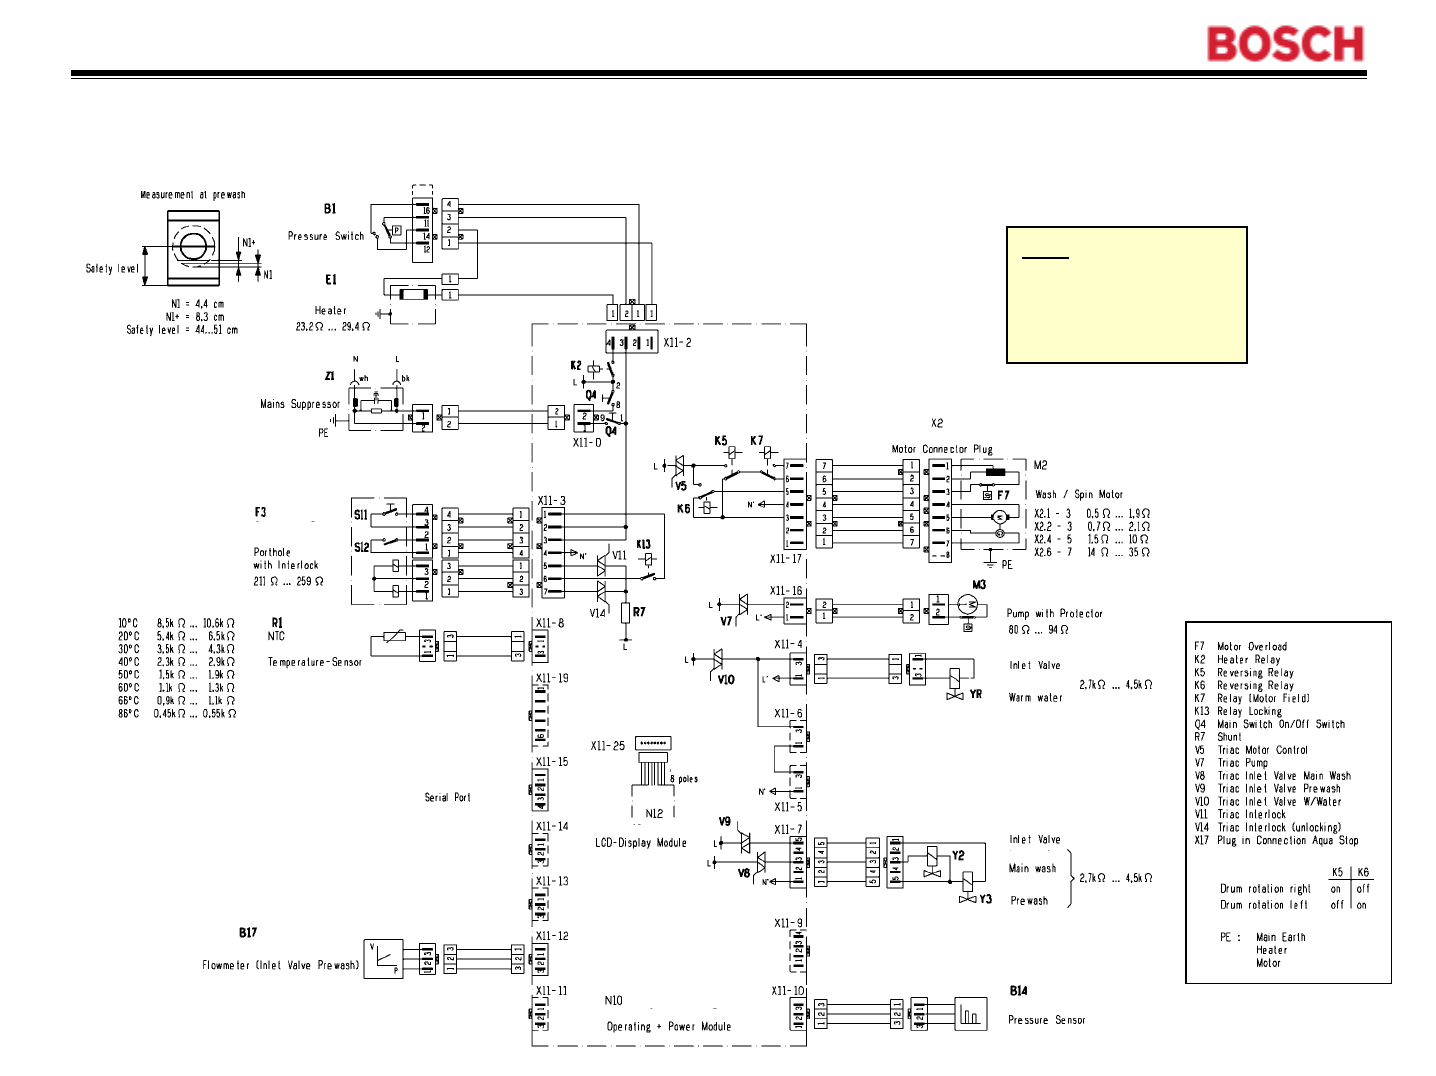 wiring diagram for bosch dishwasher the wiring diagram bosch wiring diagram bosch wiring diagrams for car or truck wiring diagram